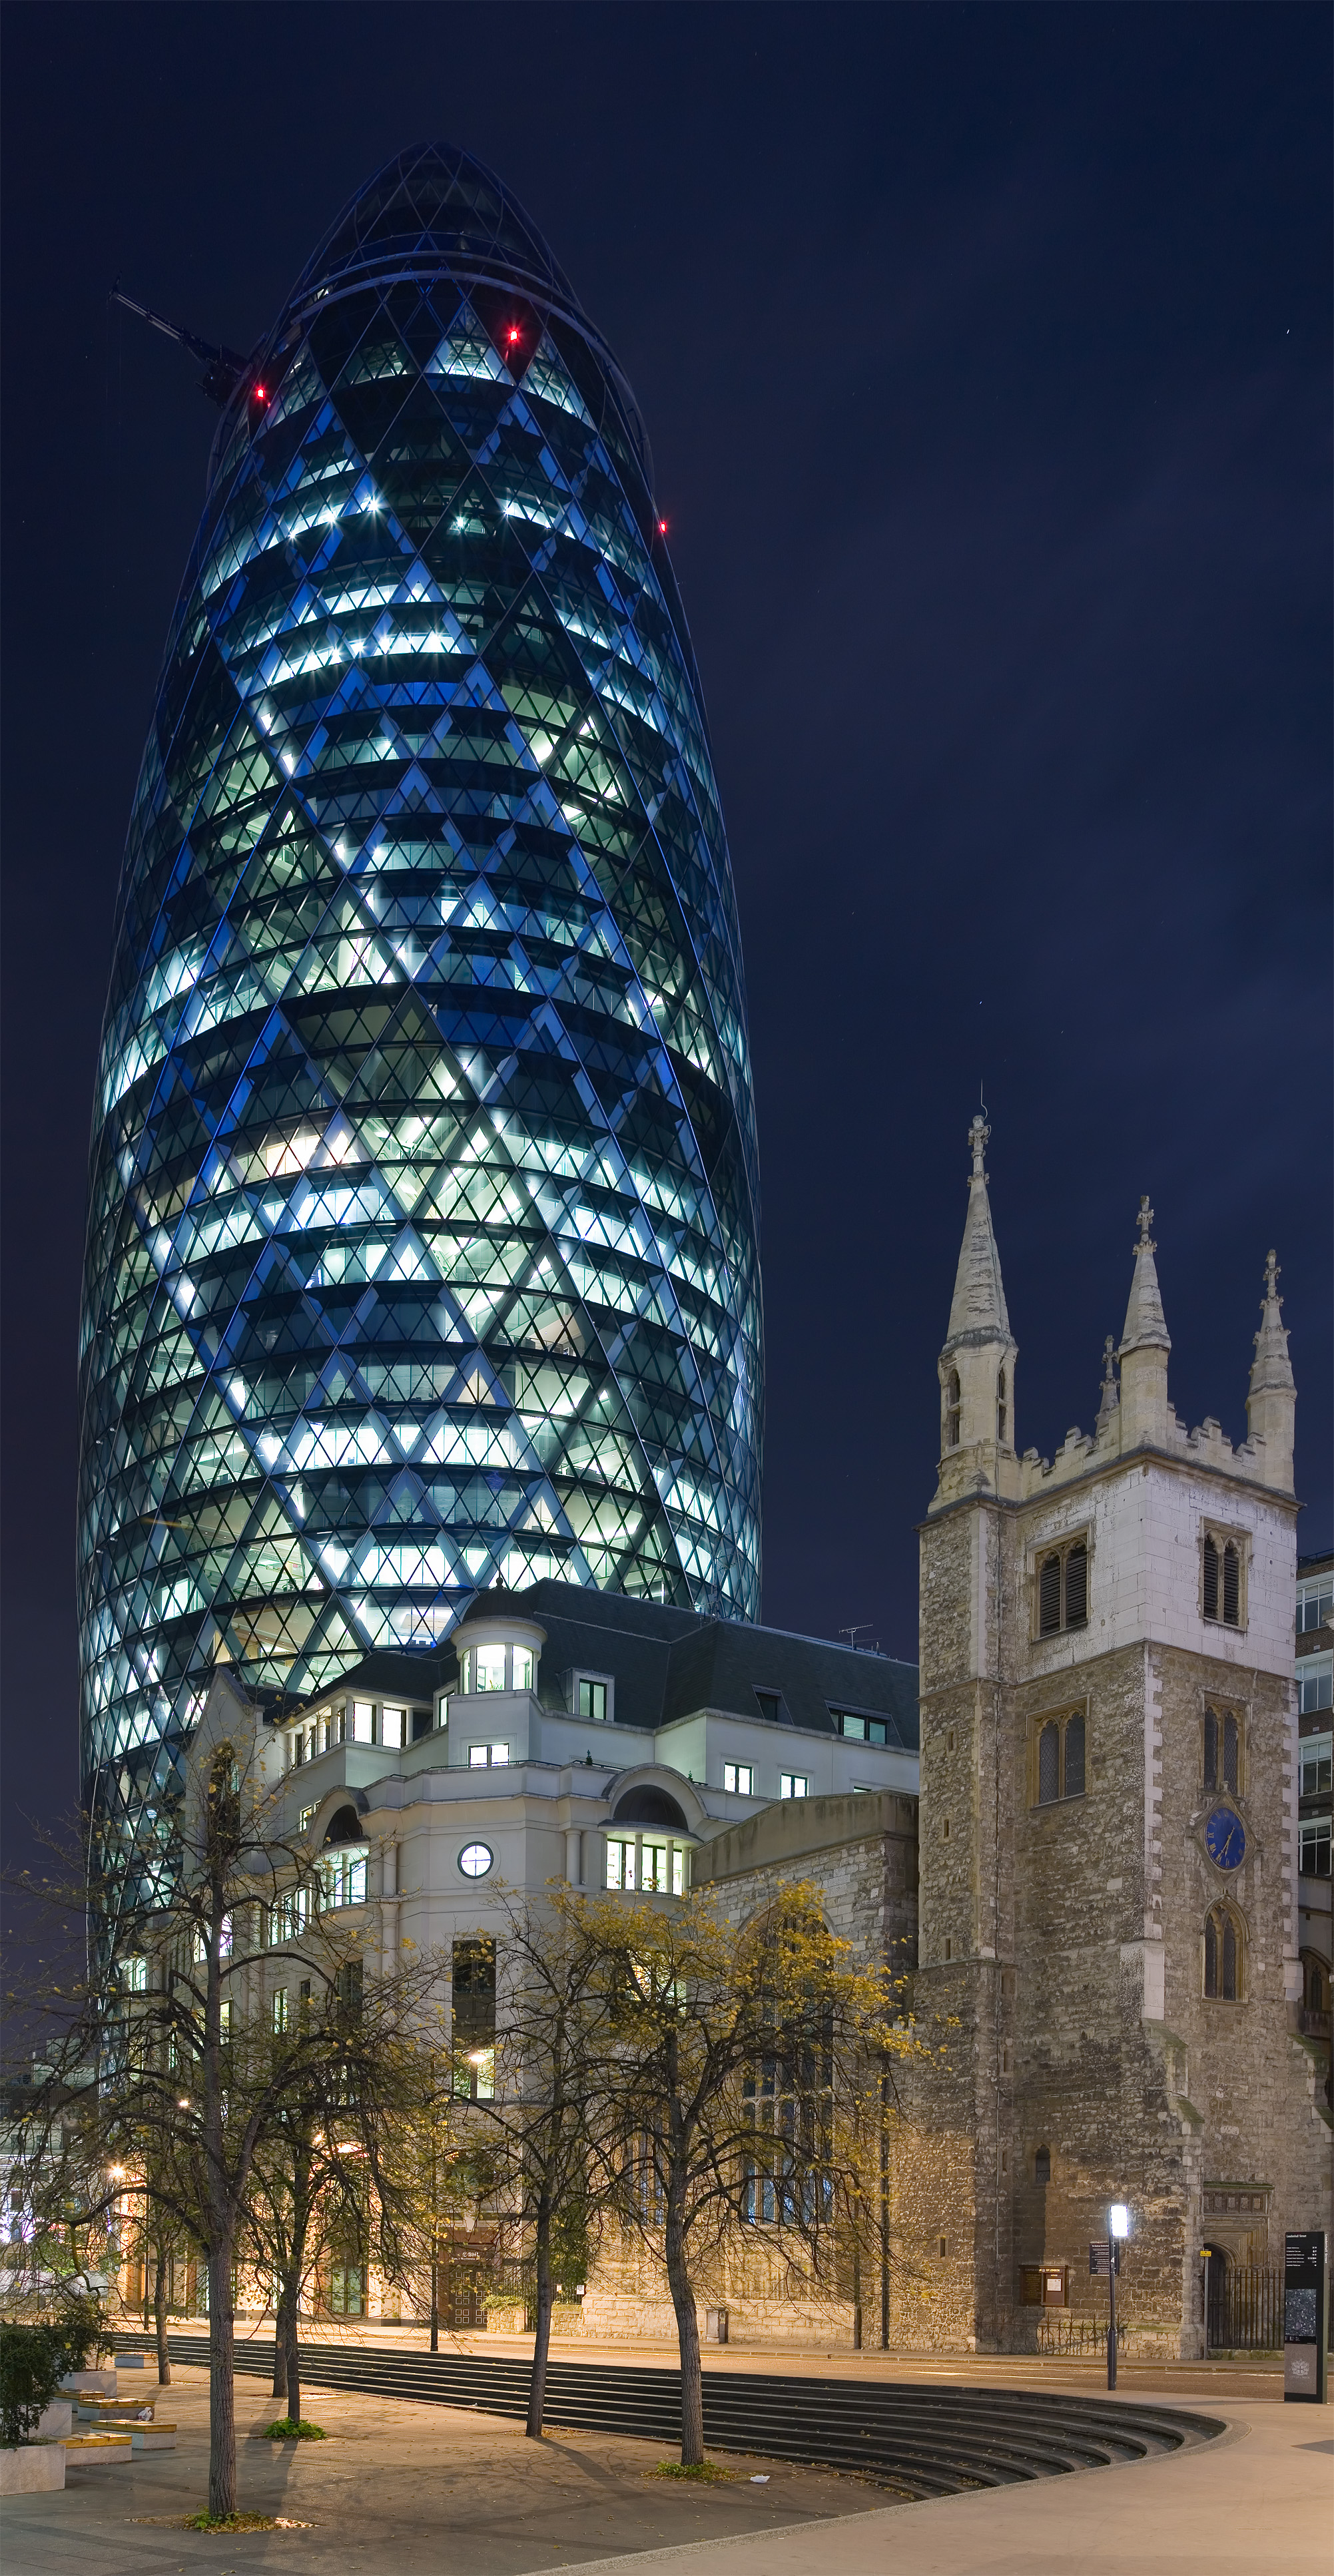 30 St Mary Axe - The Gherkin from Leadenhall St - Nov 2006